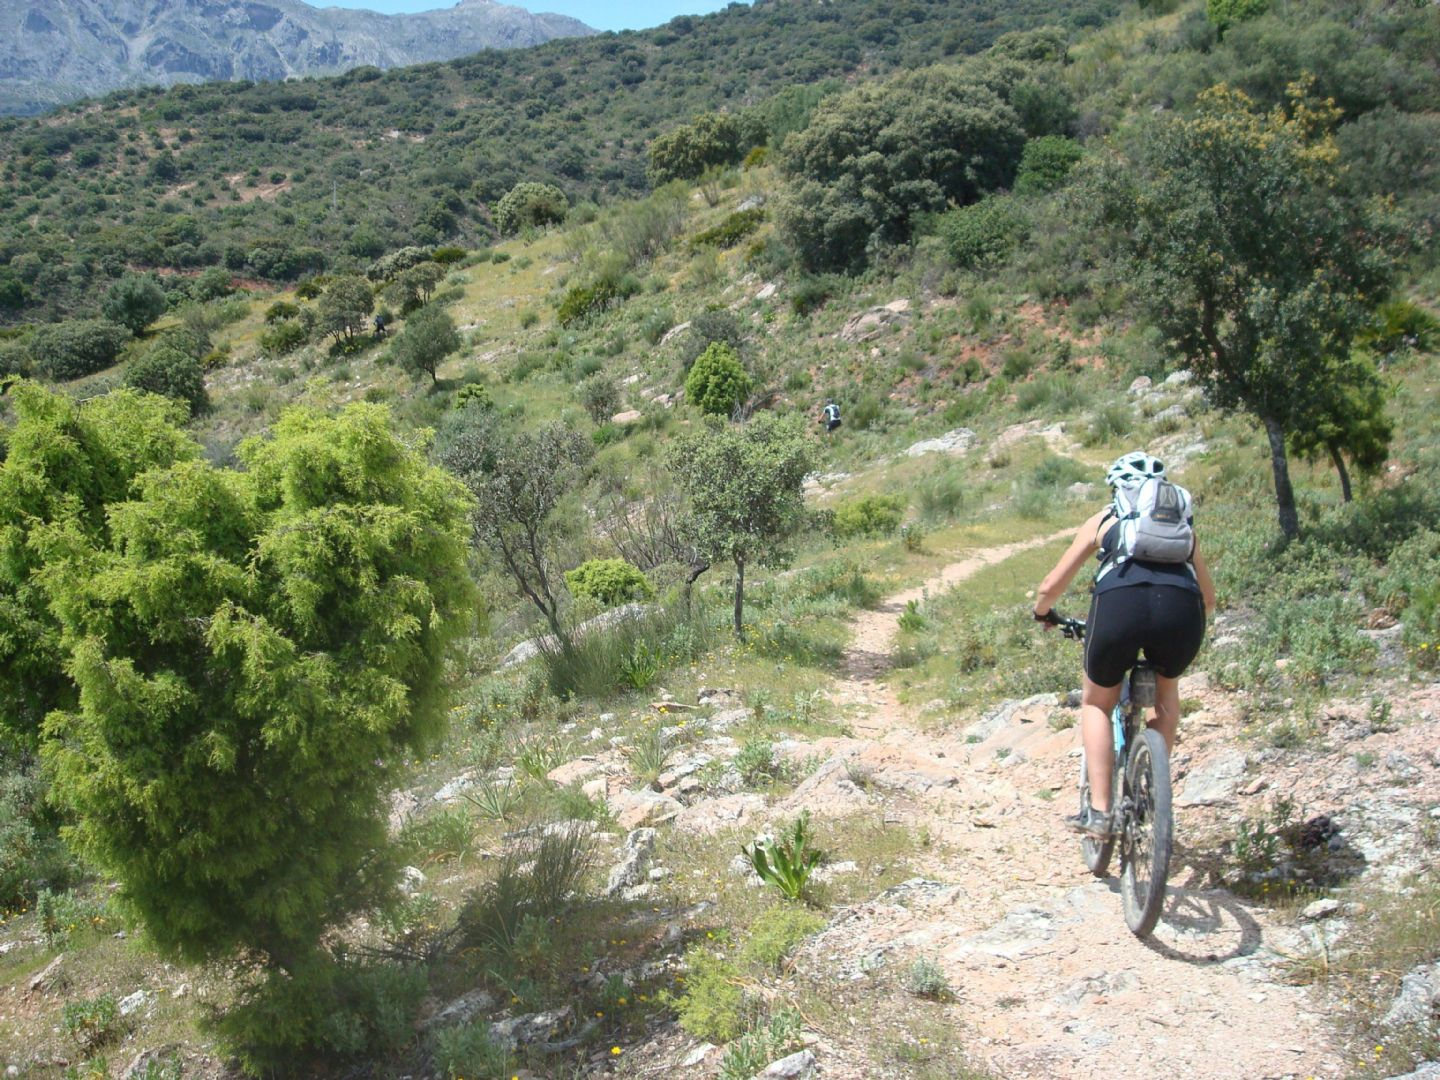 _Customer.29243.10362.jpg - Spain - Trans Andaluz - Guided Mountain Bike Holiday - Mountain Biking